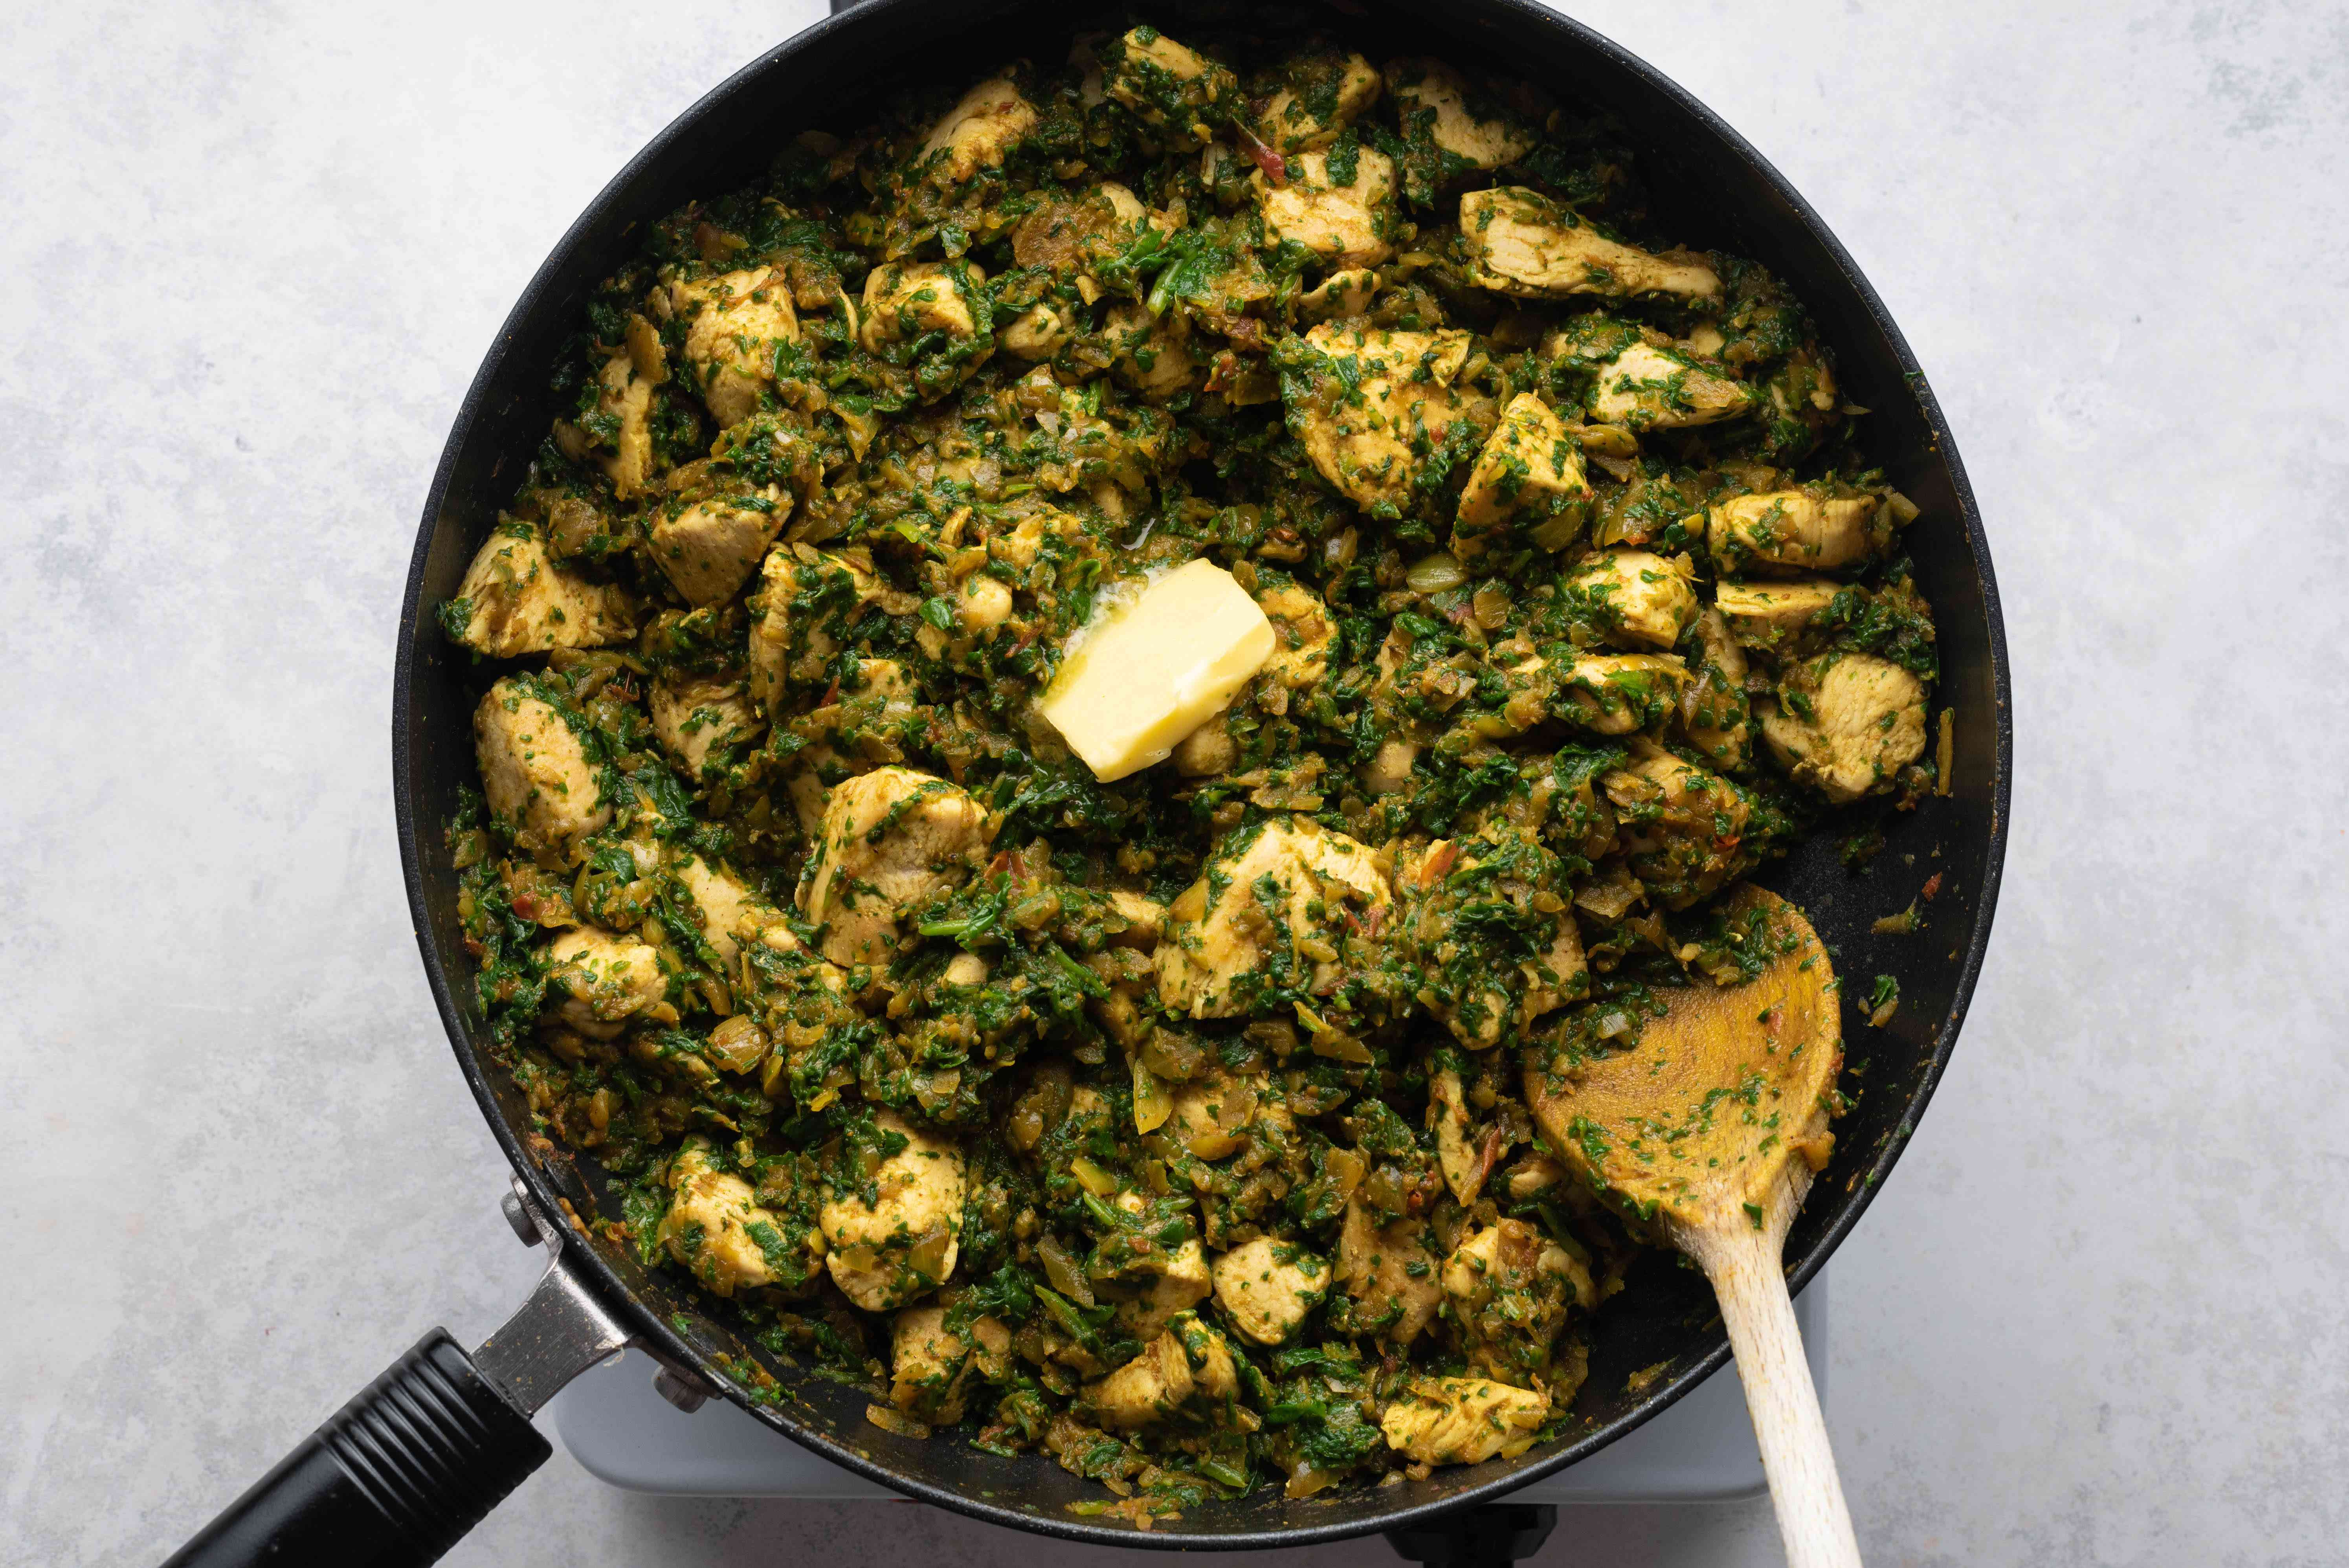 spinach and butter cooking with the chicken mixture in the pan